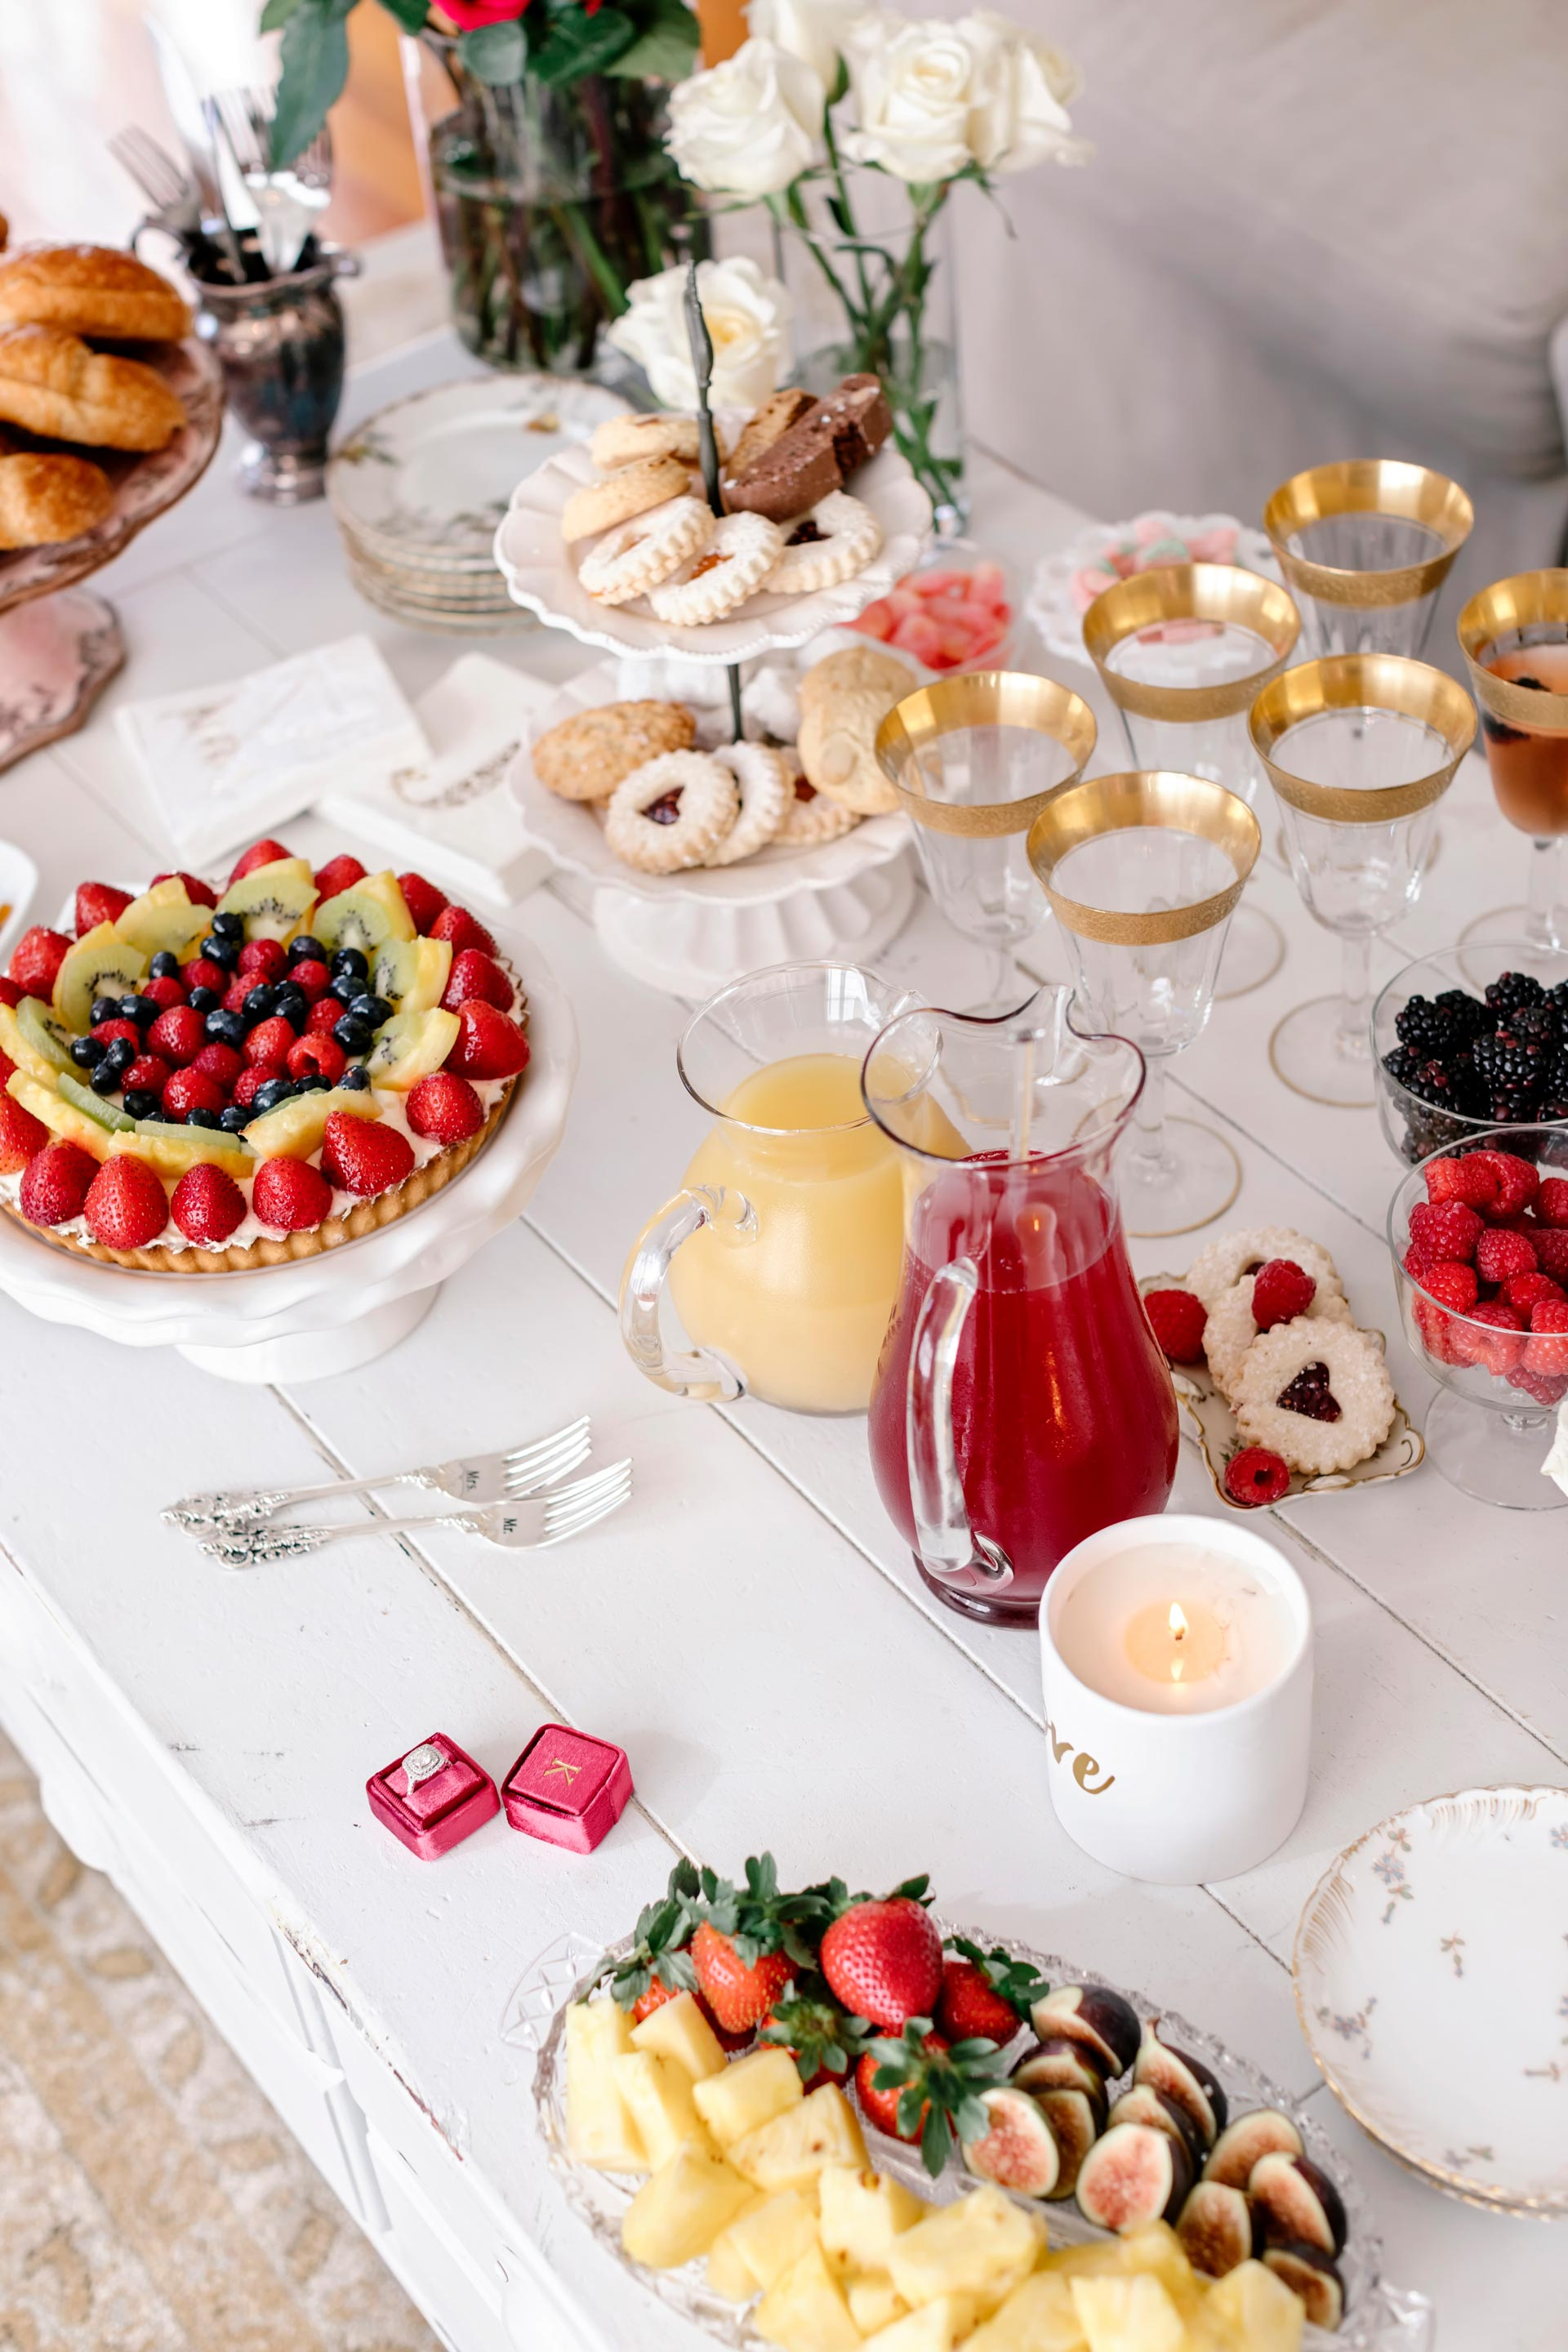 Styled Wedding Breakfast with Champagne